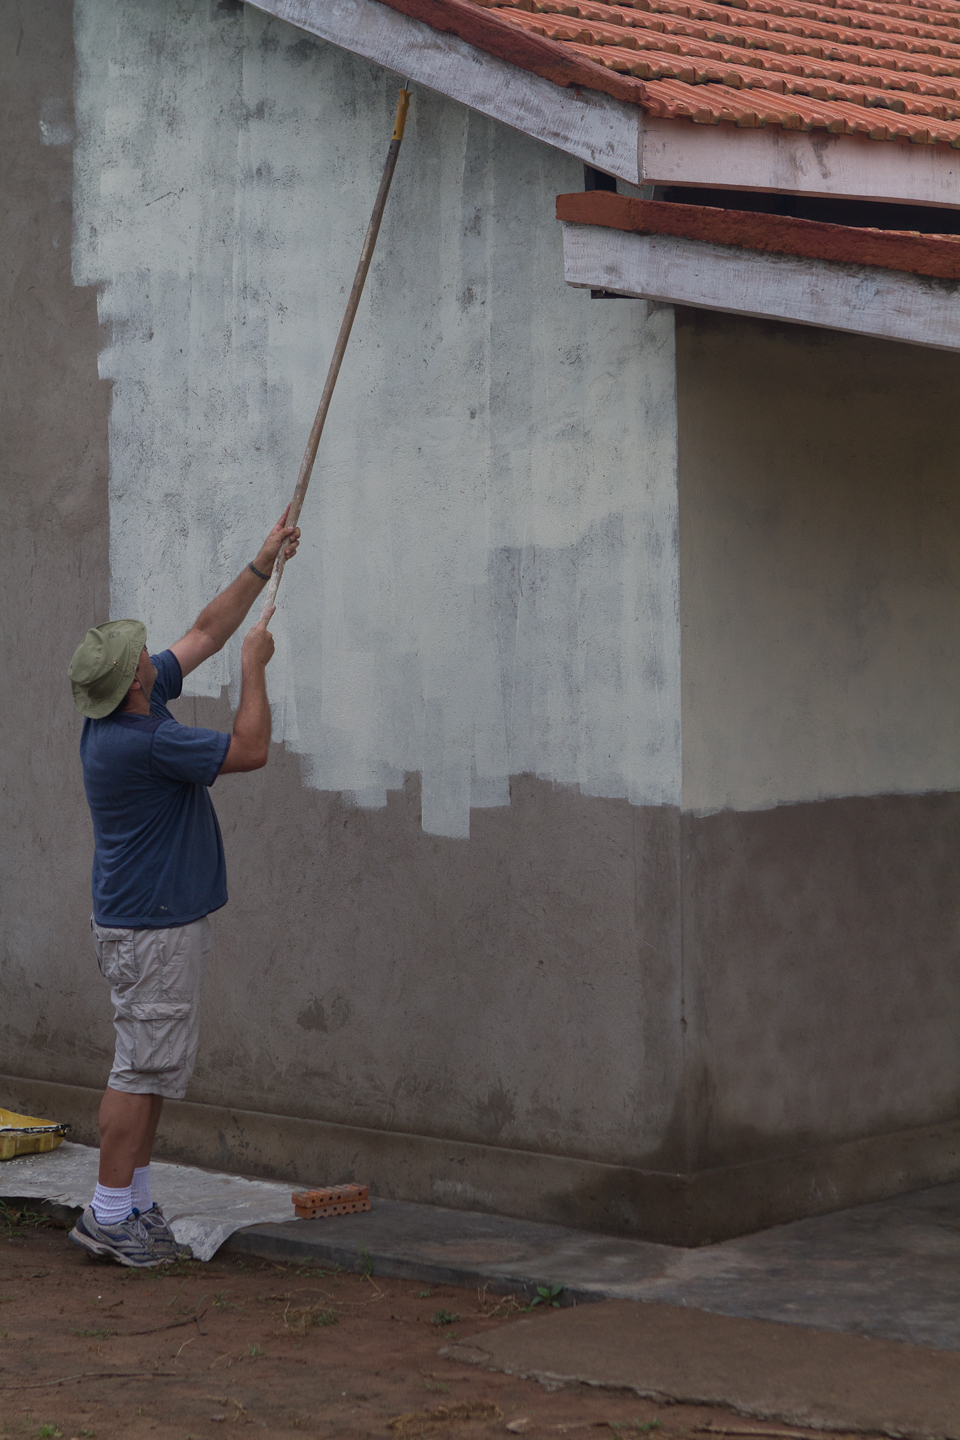 One of the pastors of Crossroads, Jack, painting the school.